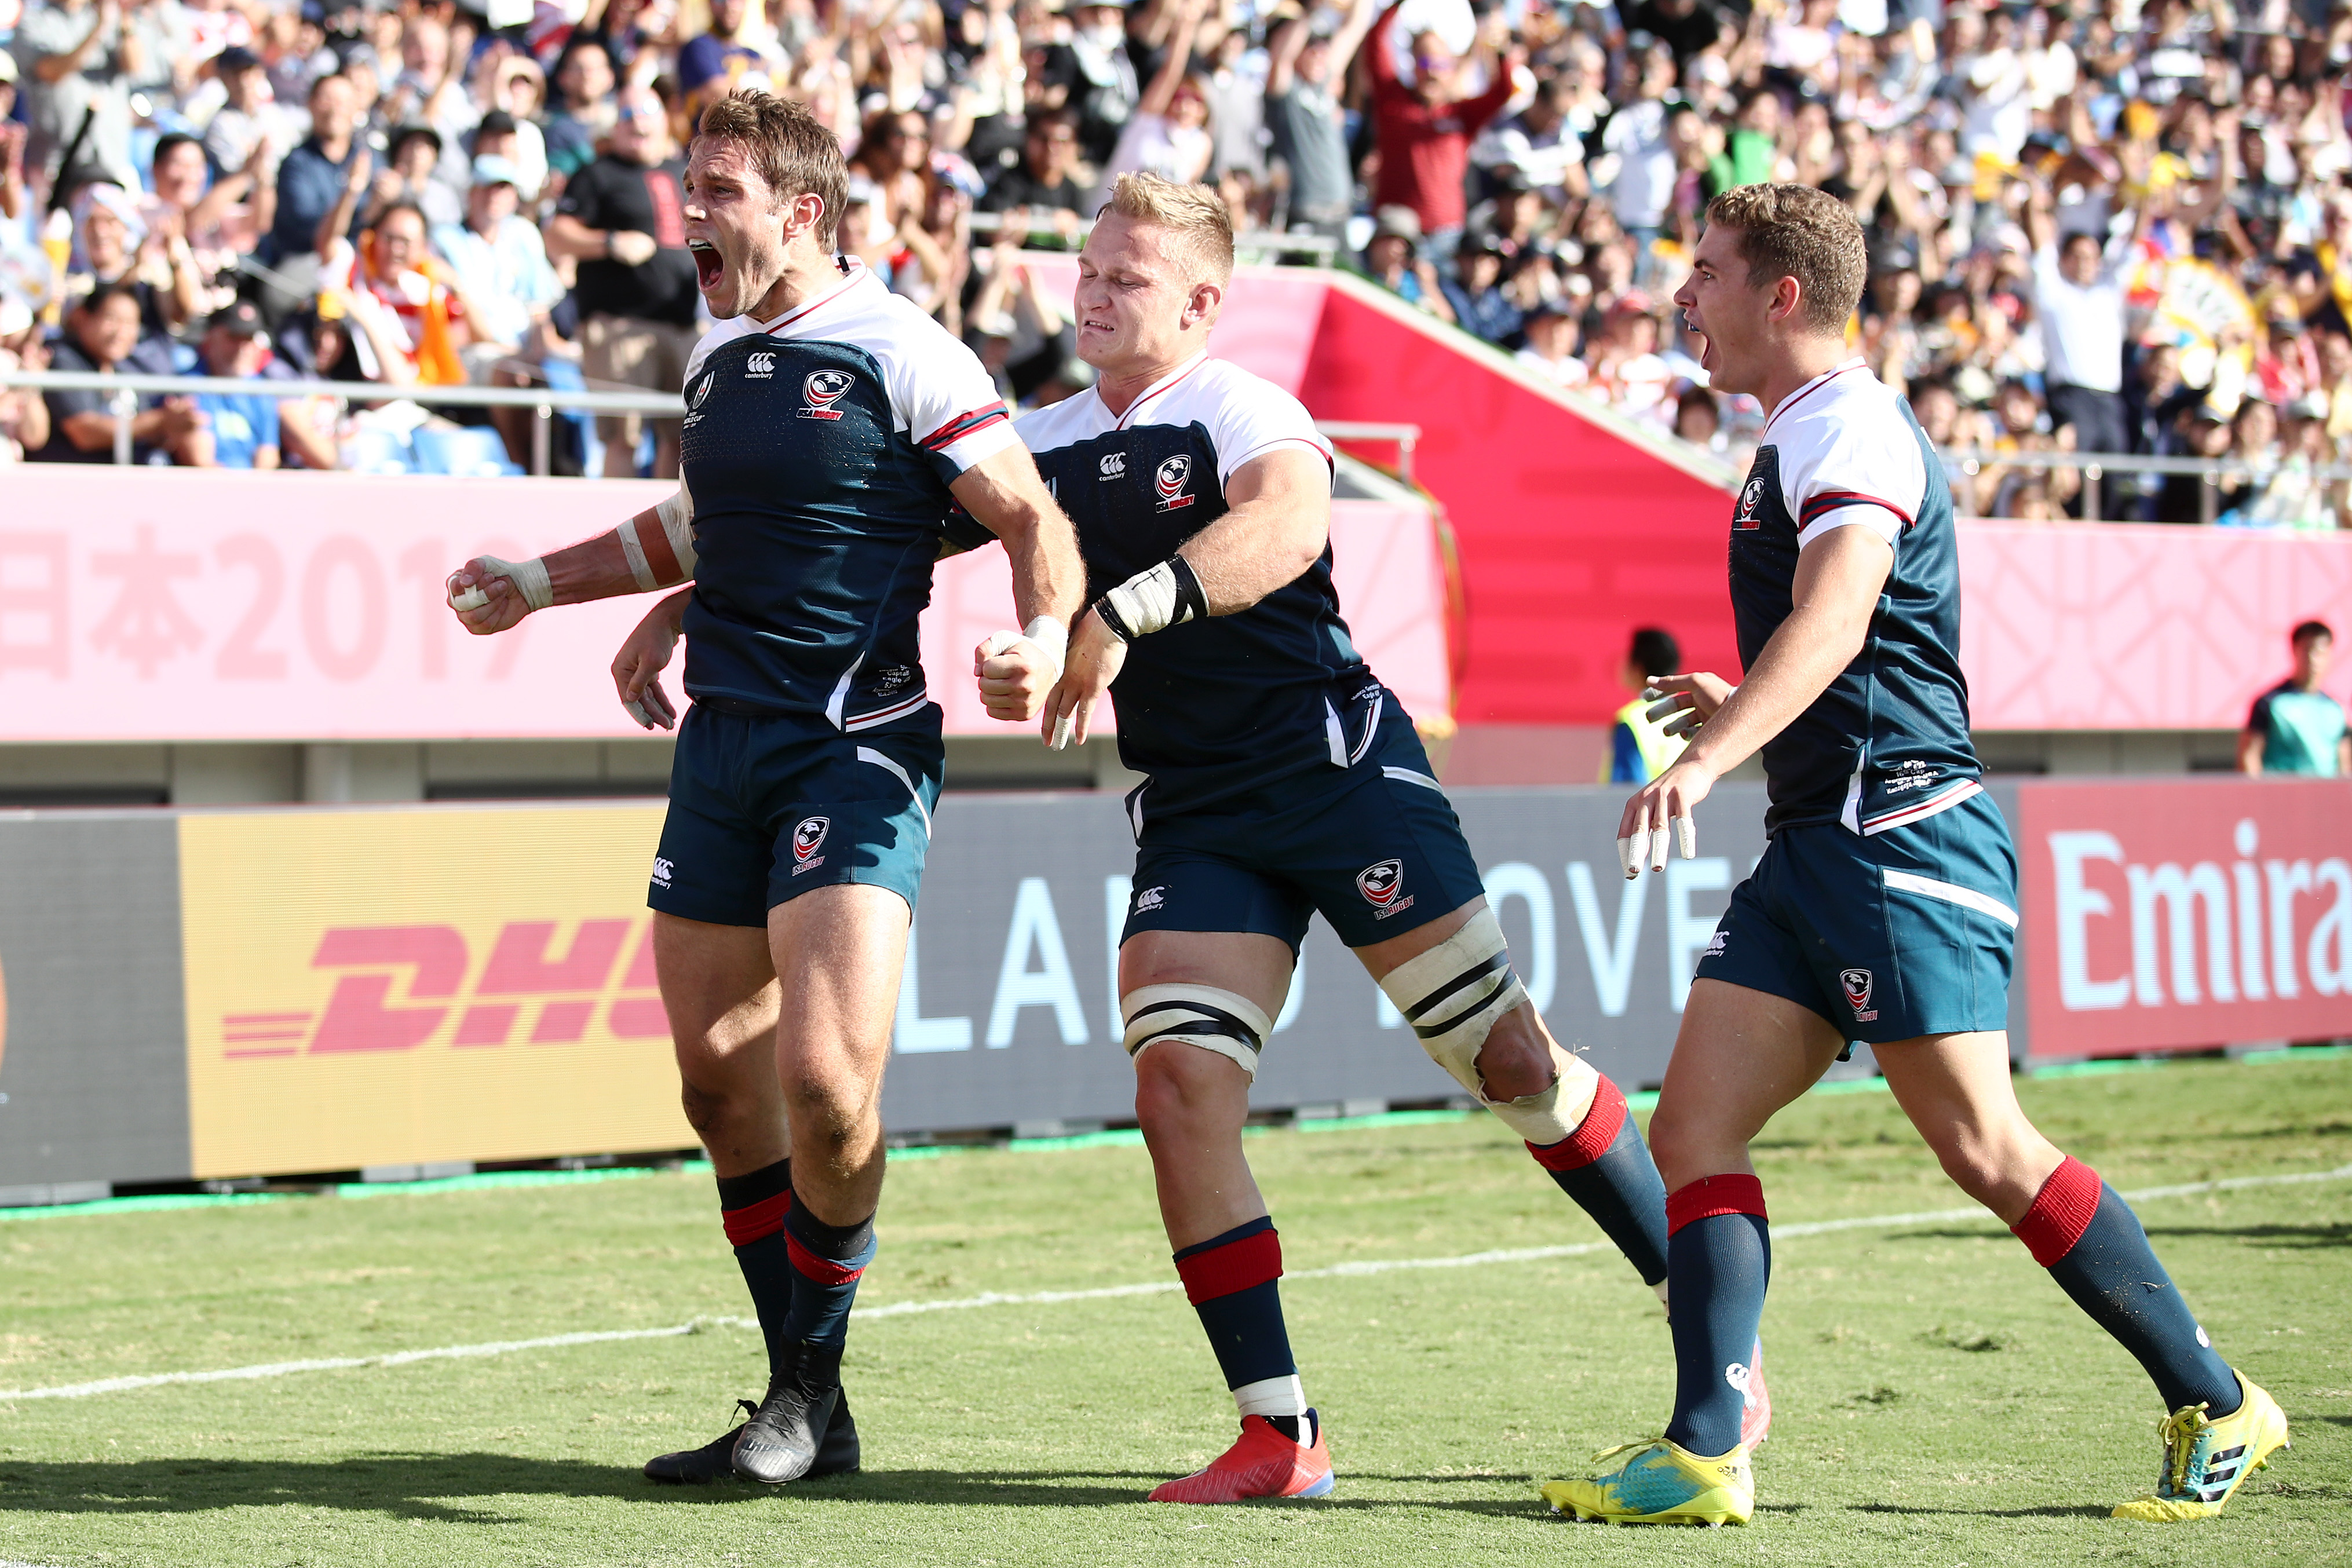 USA Rugby Word Cup bids given green light - Rugby World